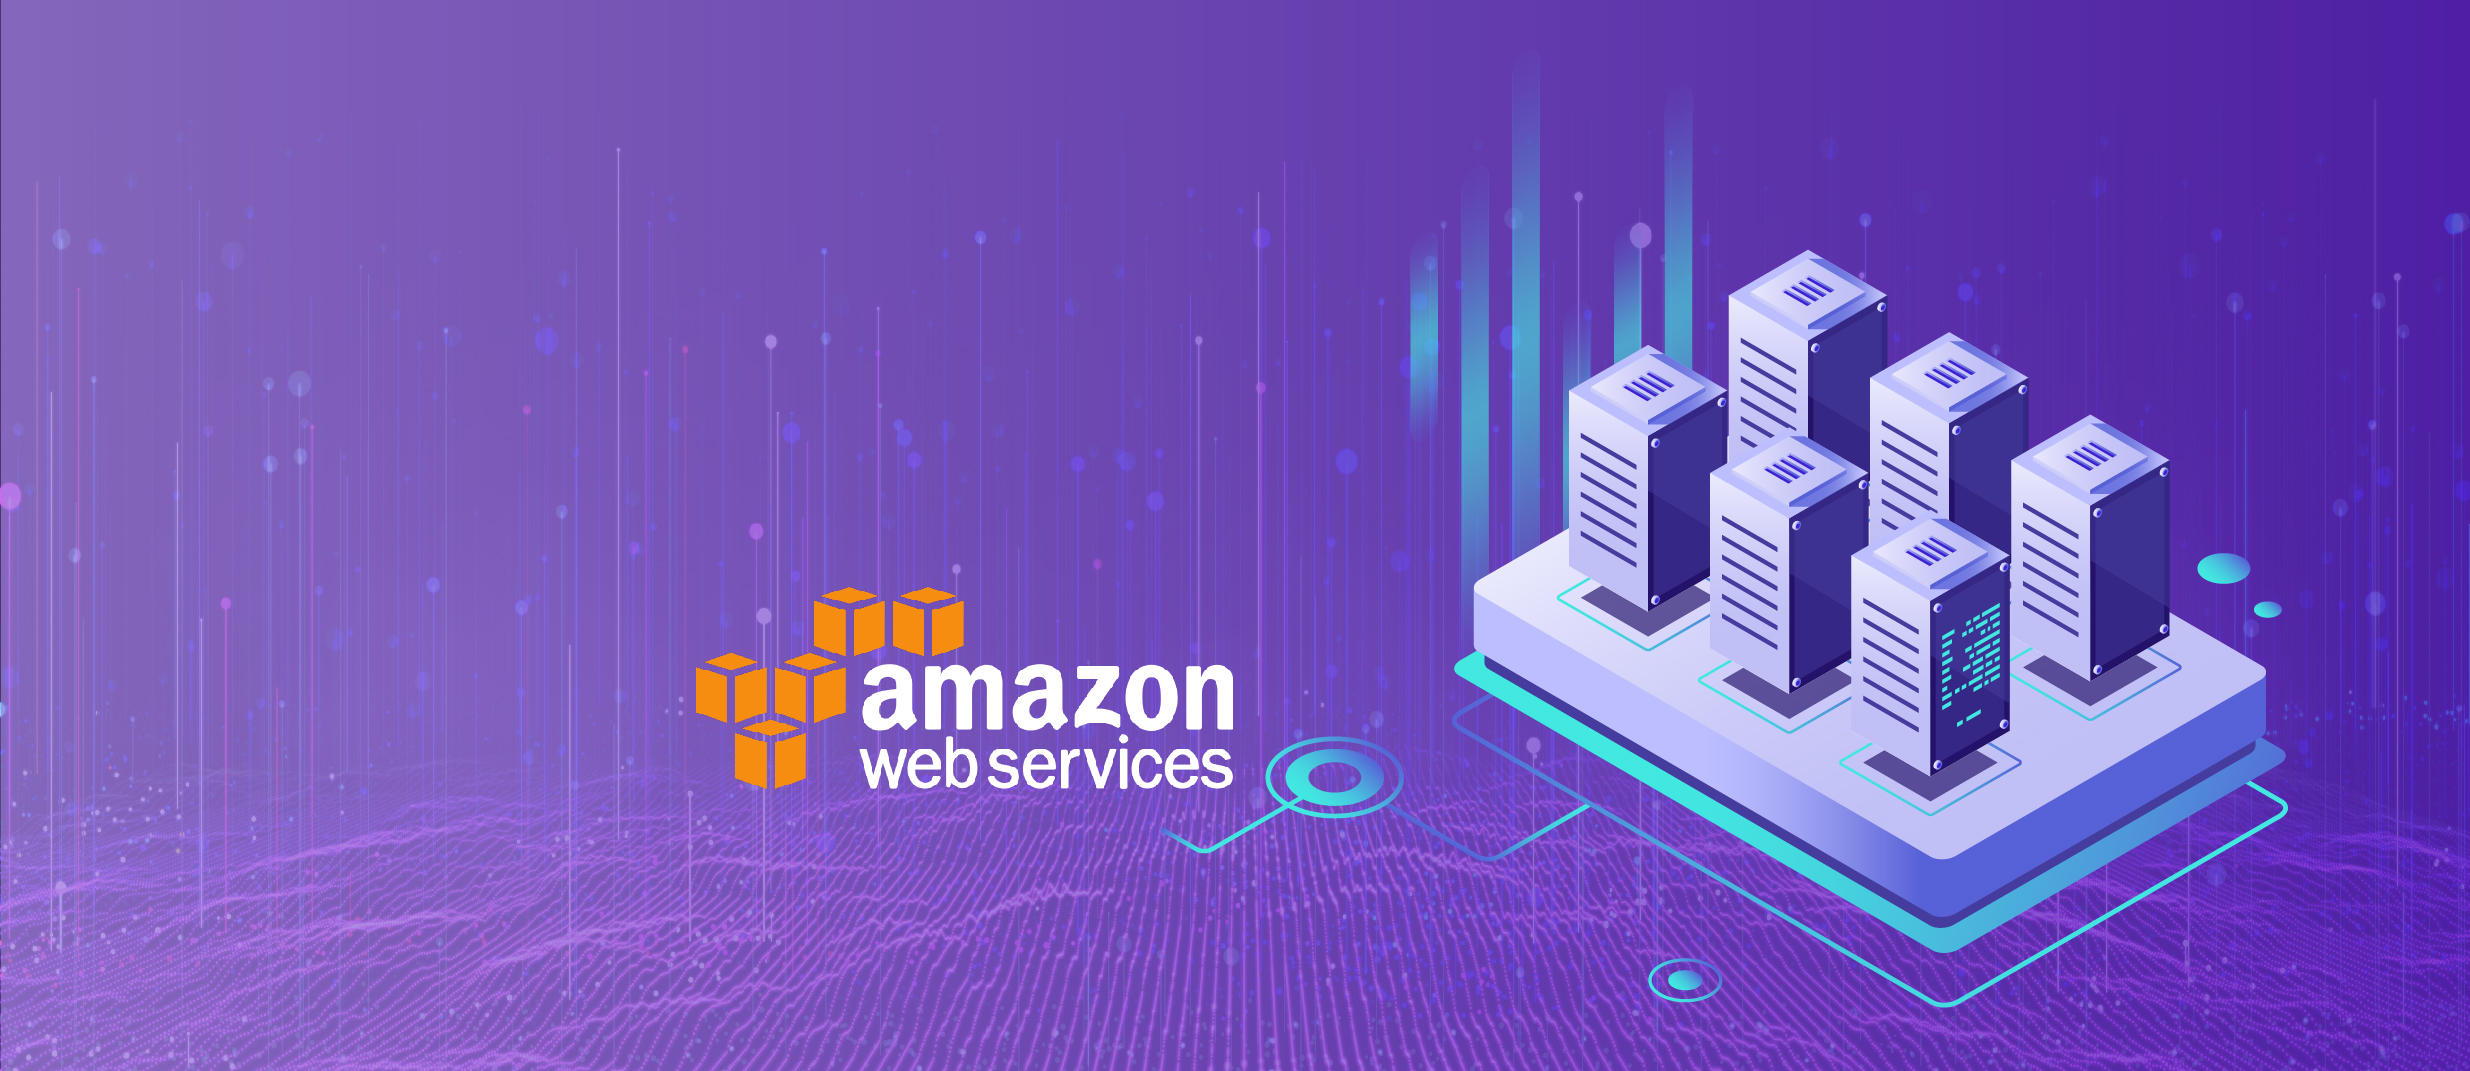 BigData on Amazon Web Services (AWS)